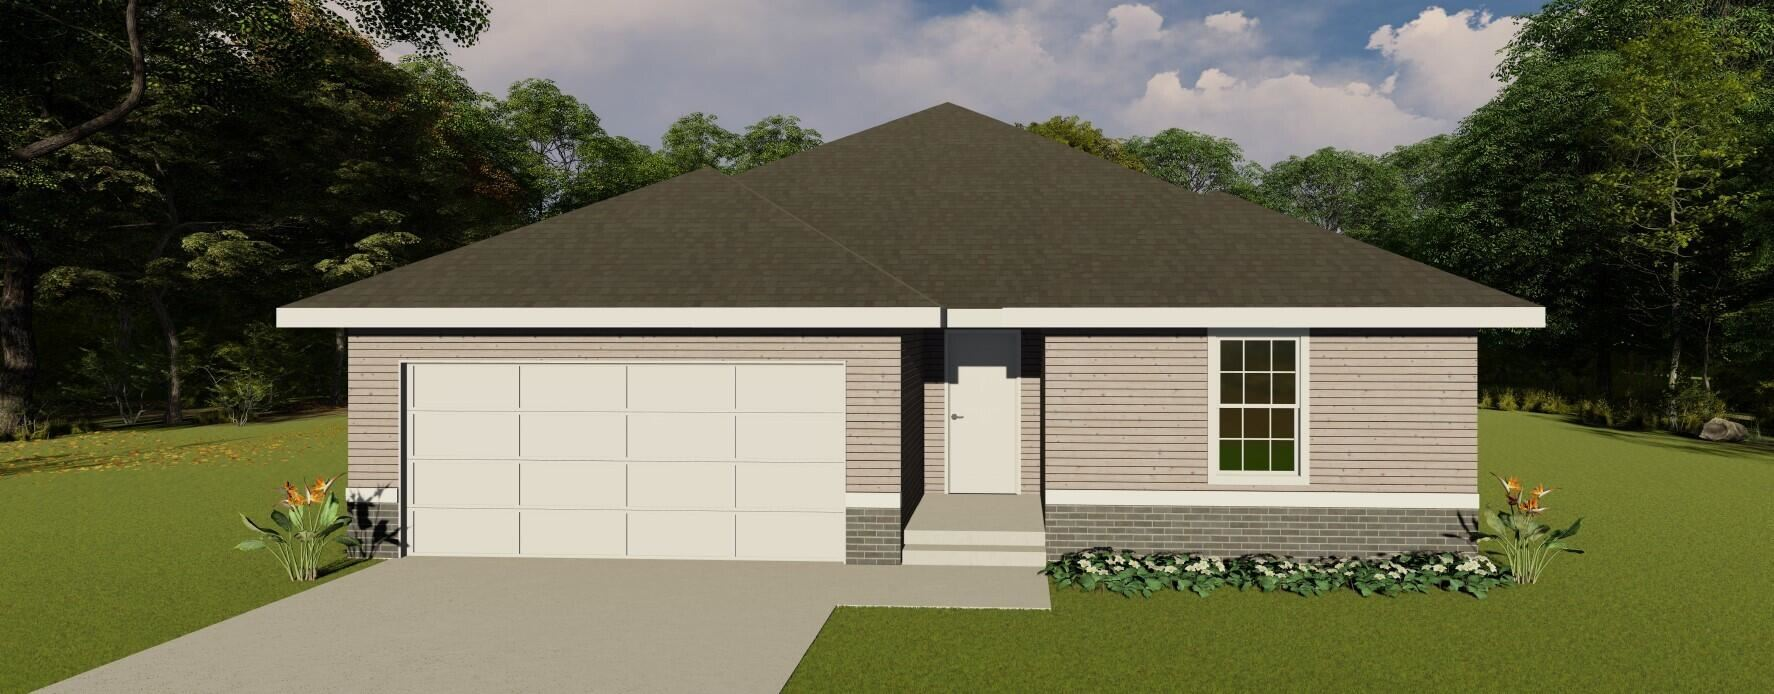 Photo of 3343 East Beaumont Court, Springfield, MO 65804 (MLS # 60203791)